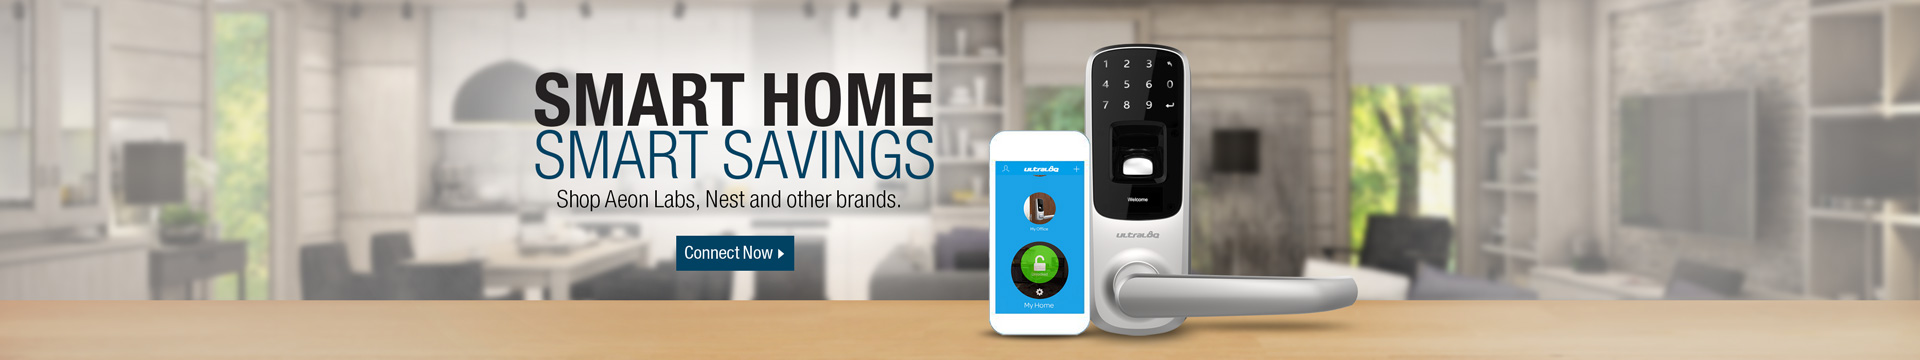 Smart Home Smart Savings